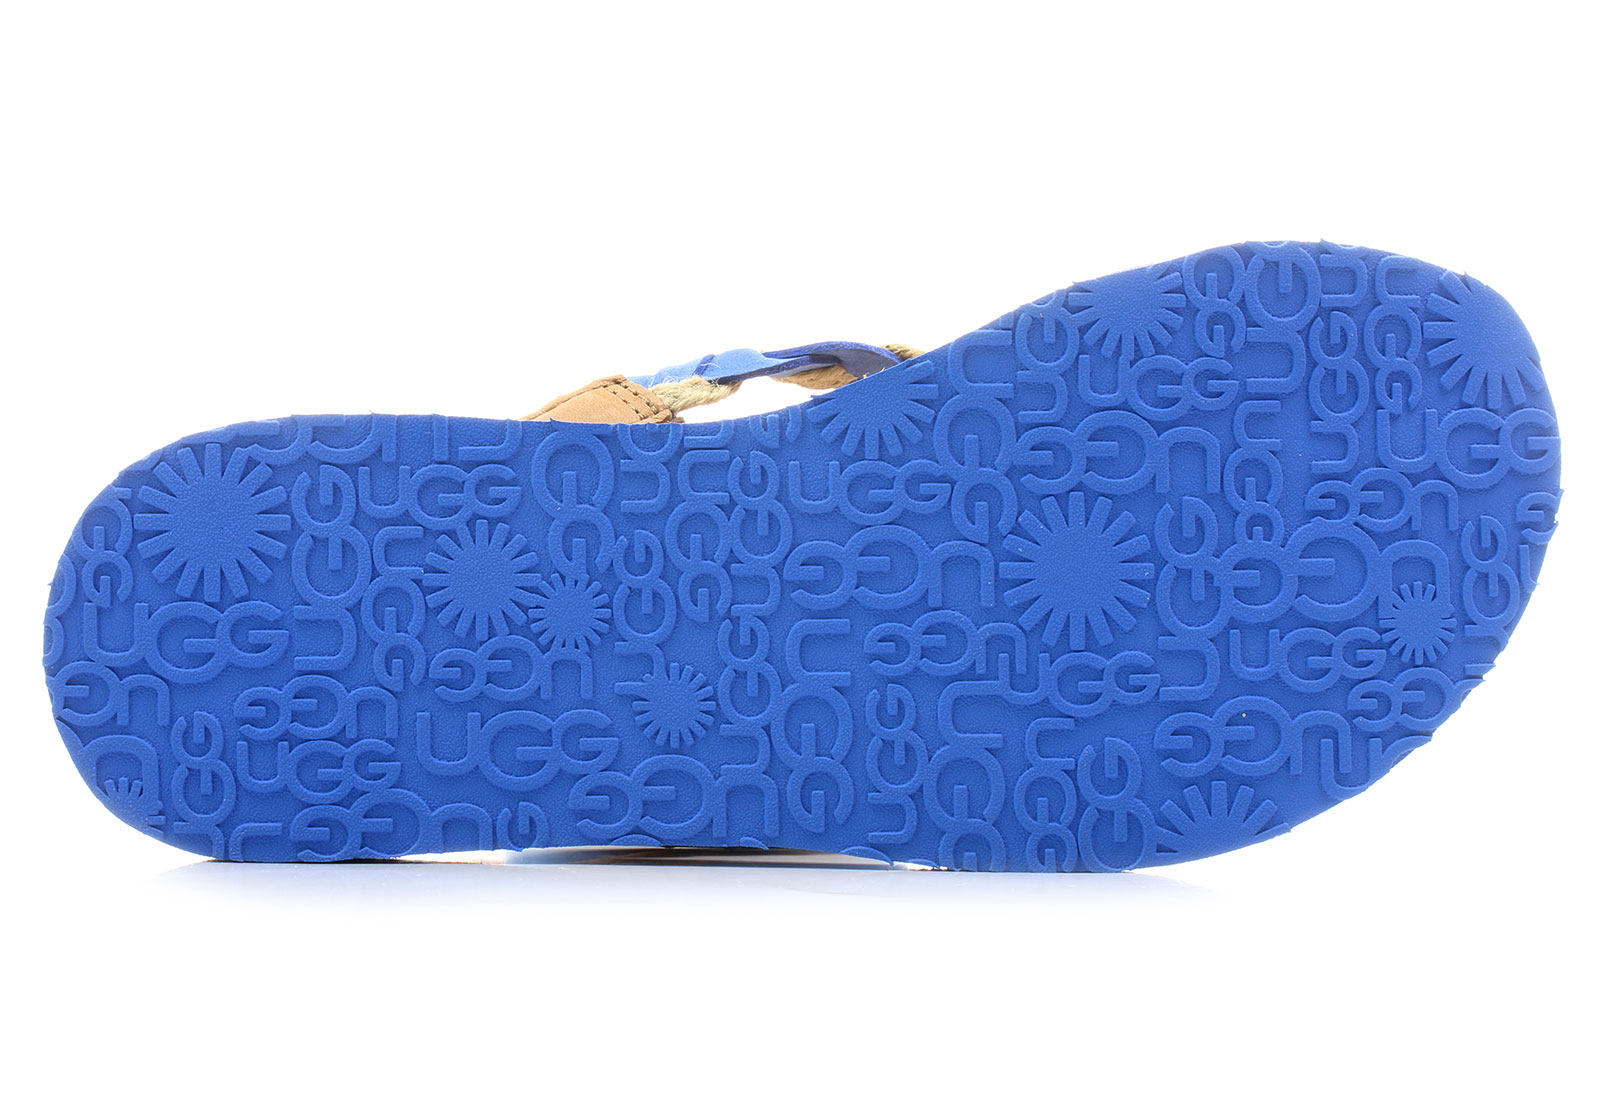 4e66e060a2f Ugg Slippers - Navie - 1006342-SYL - Online shop for sneakers, shoes and  boots